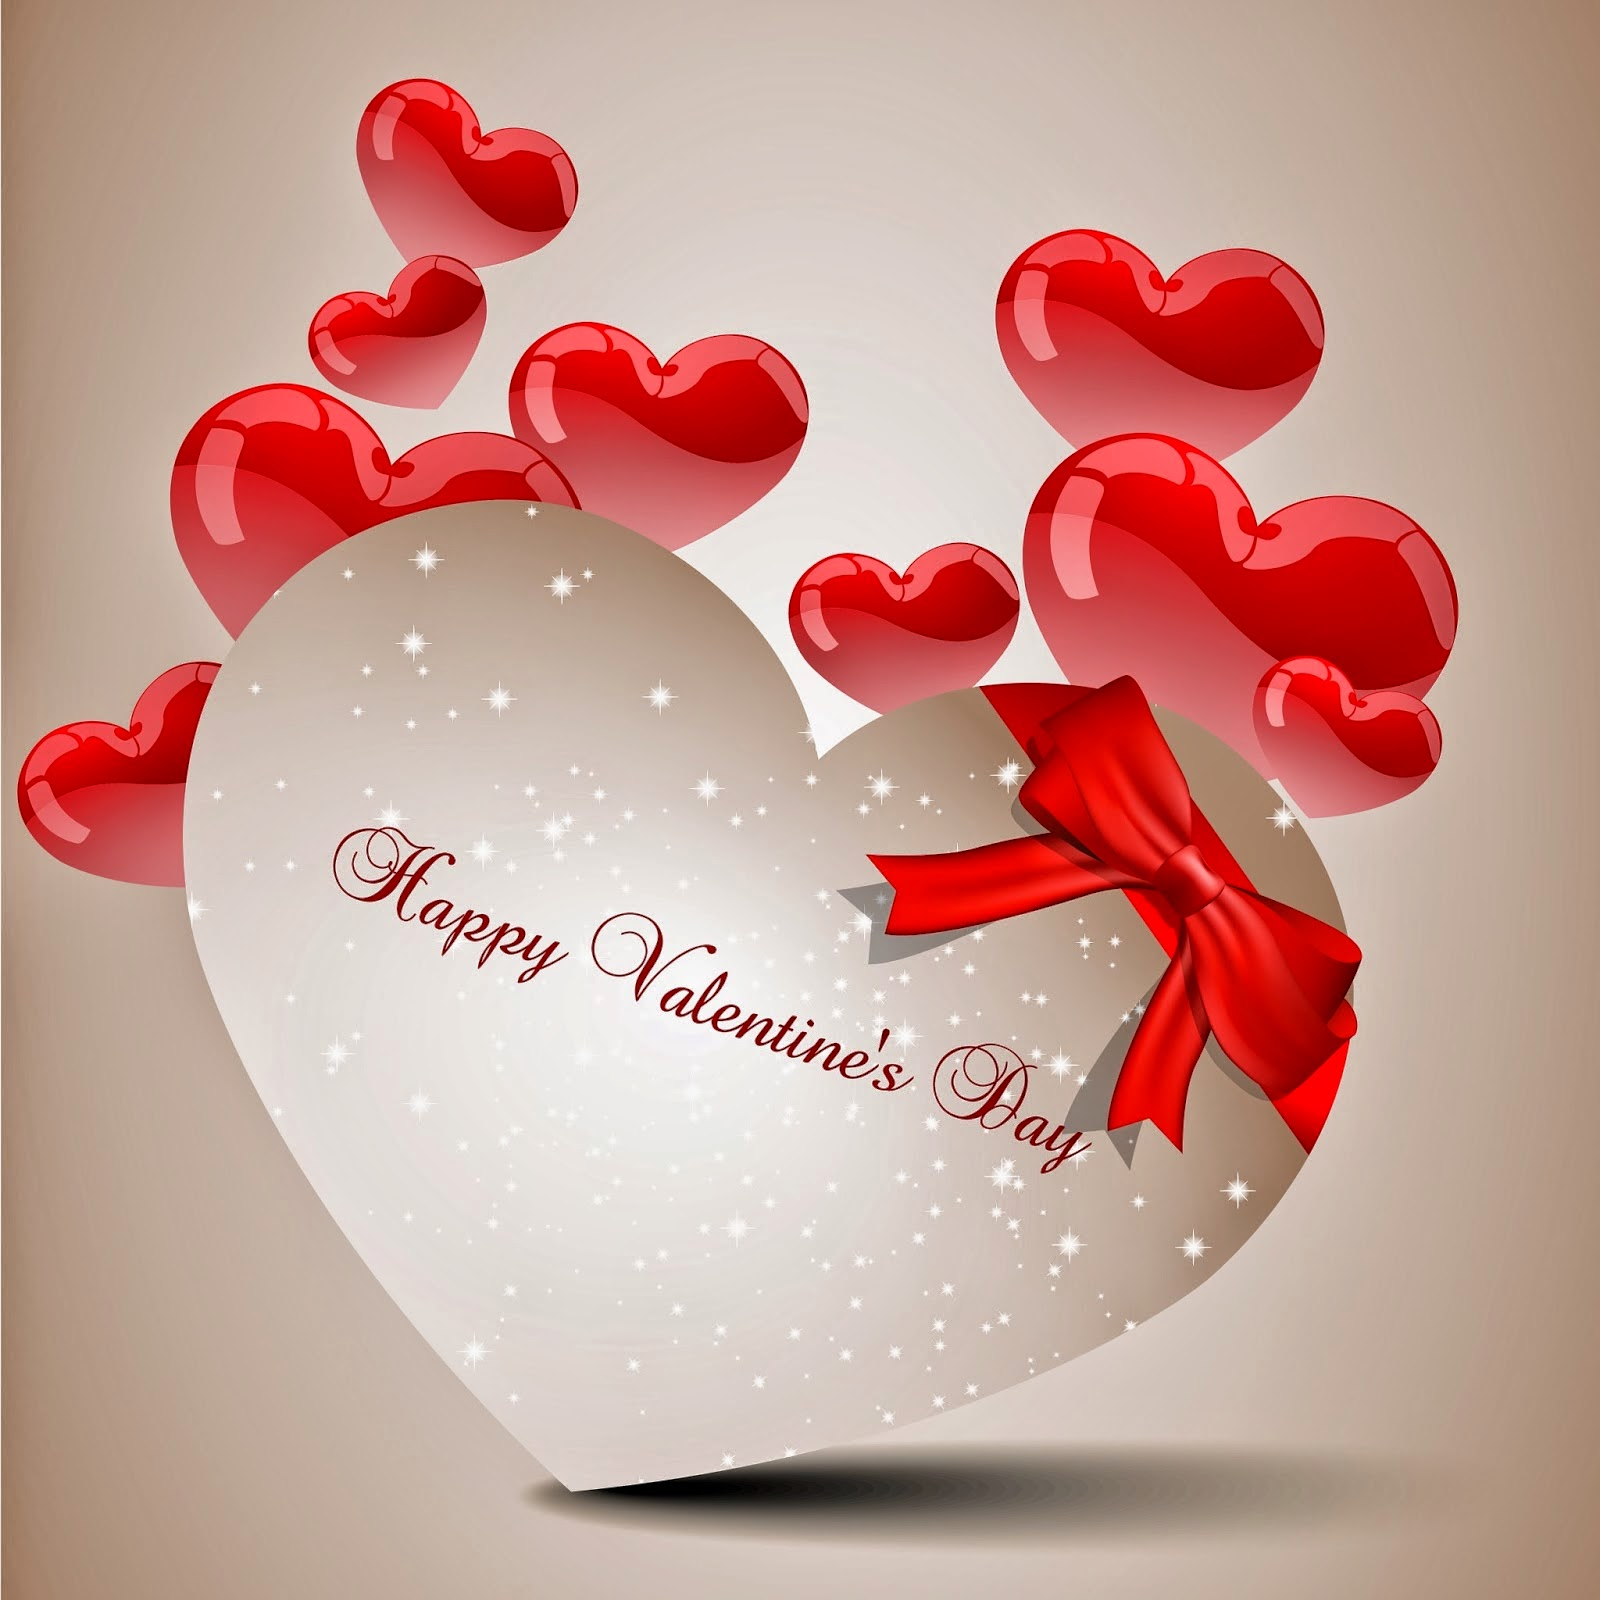 hwRhb valentines day images for whatsapp dp profile